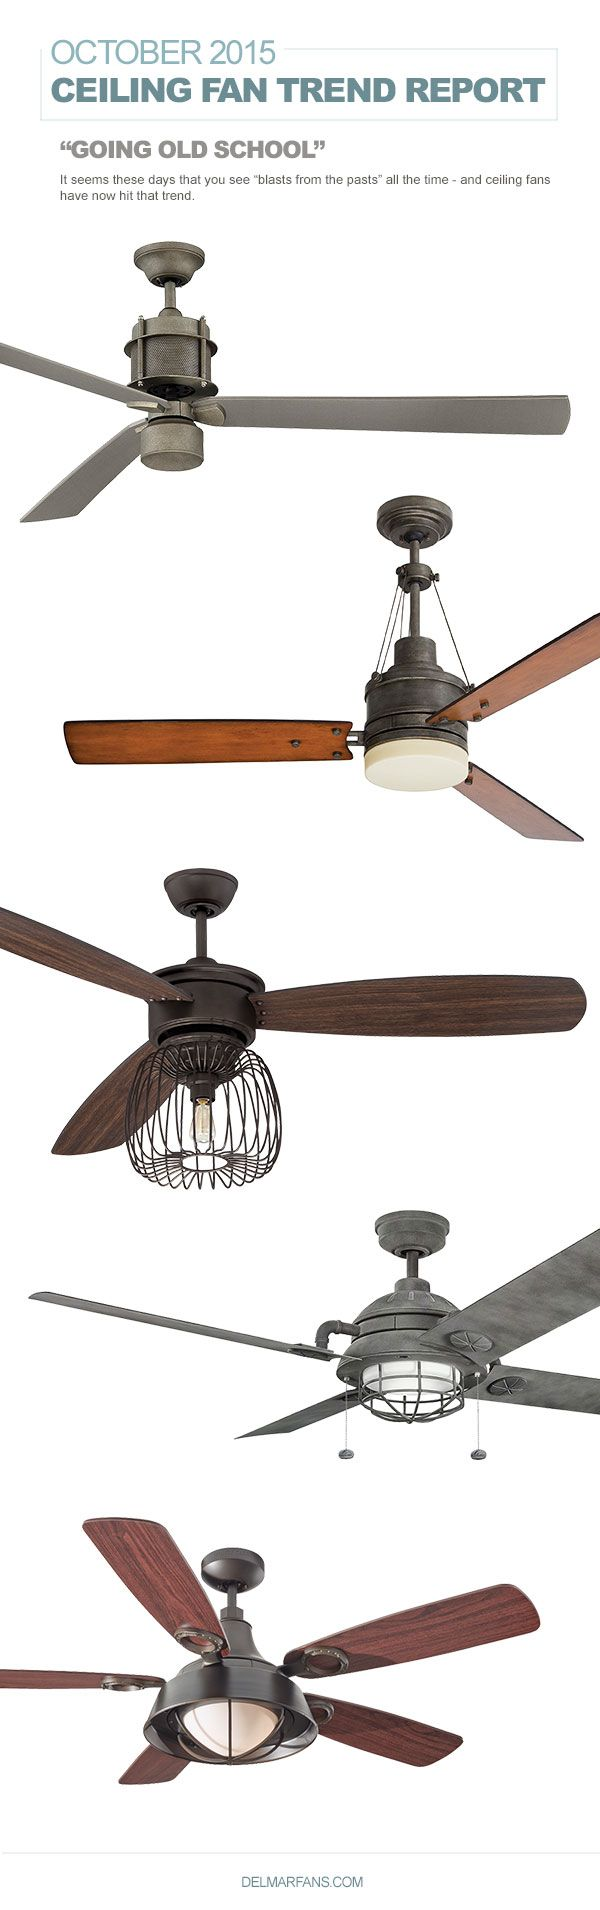 Vintage/Industrial Ceiling Fans Trending for October 2015